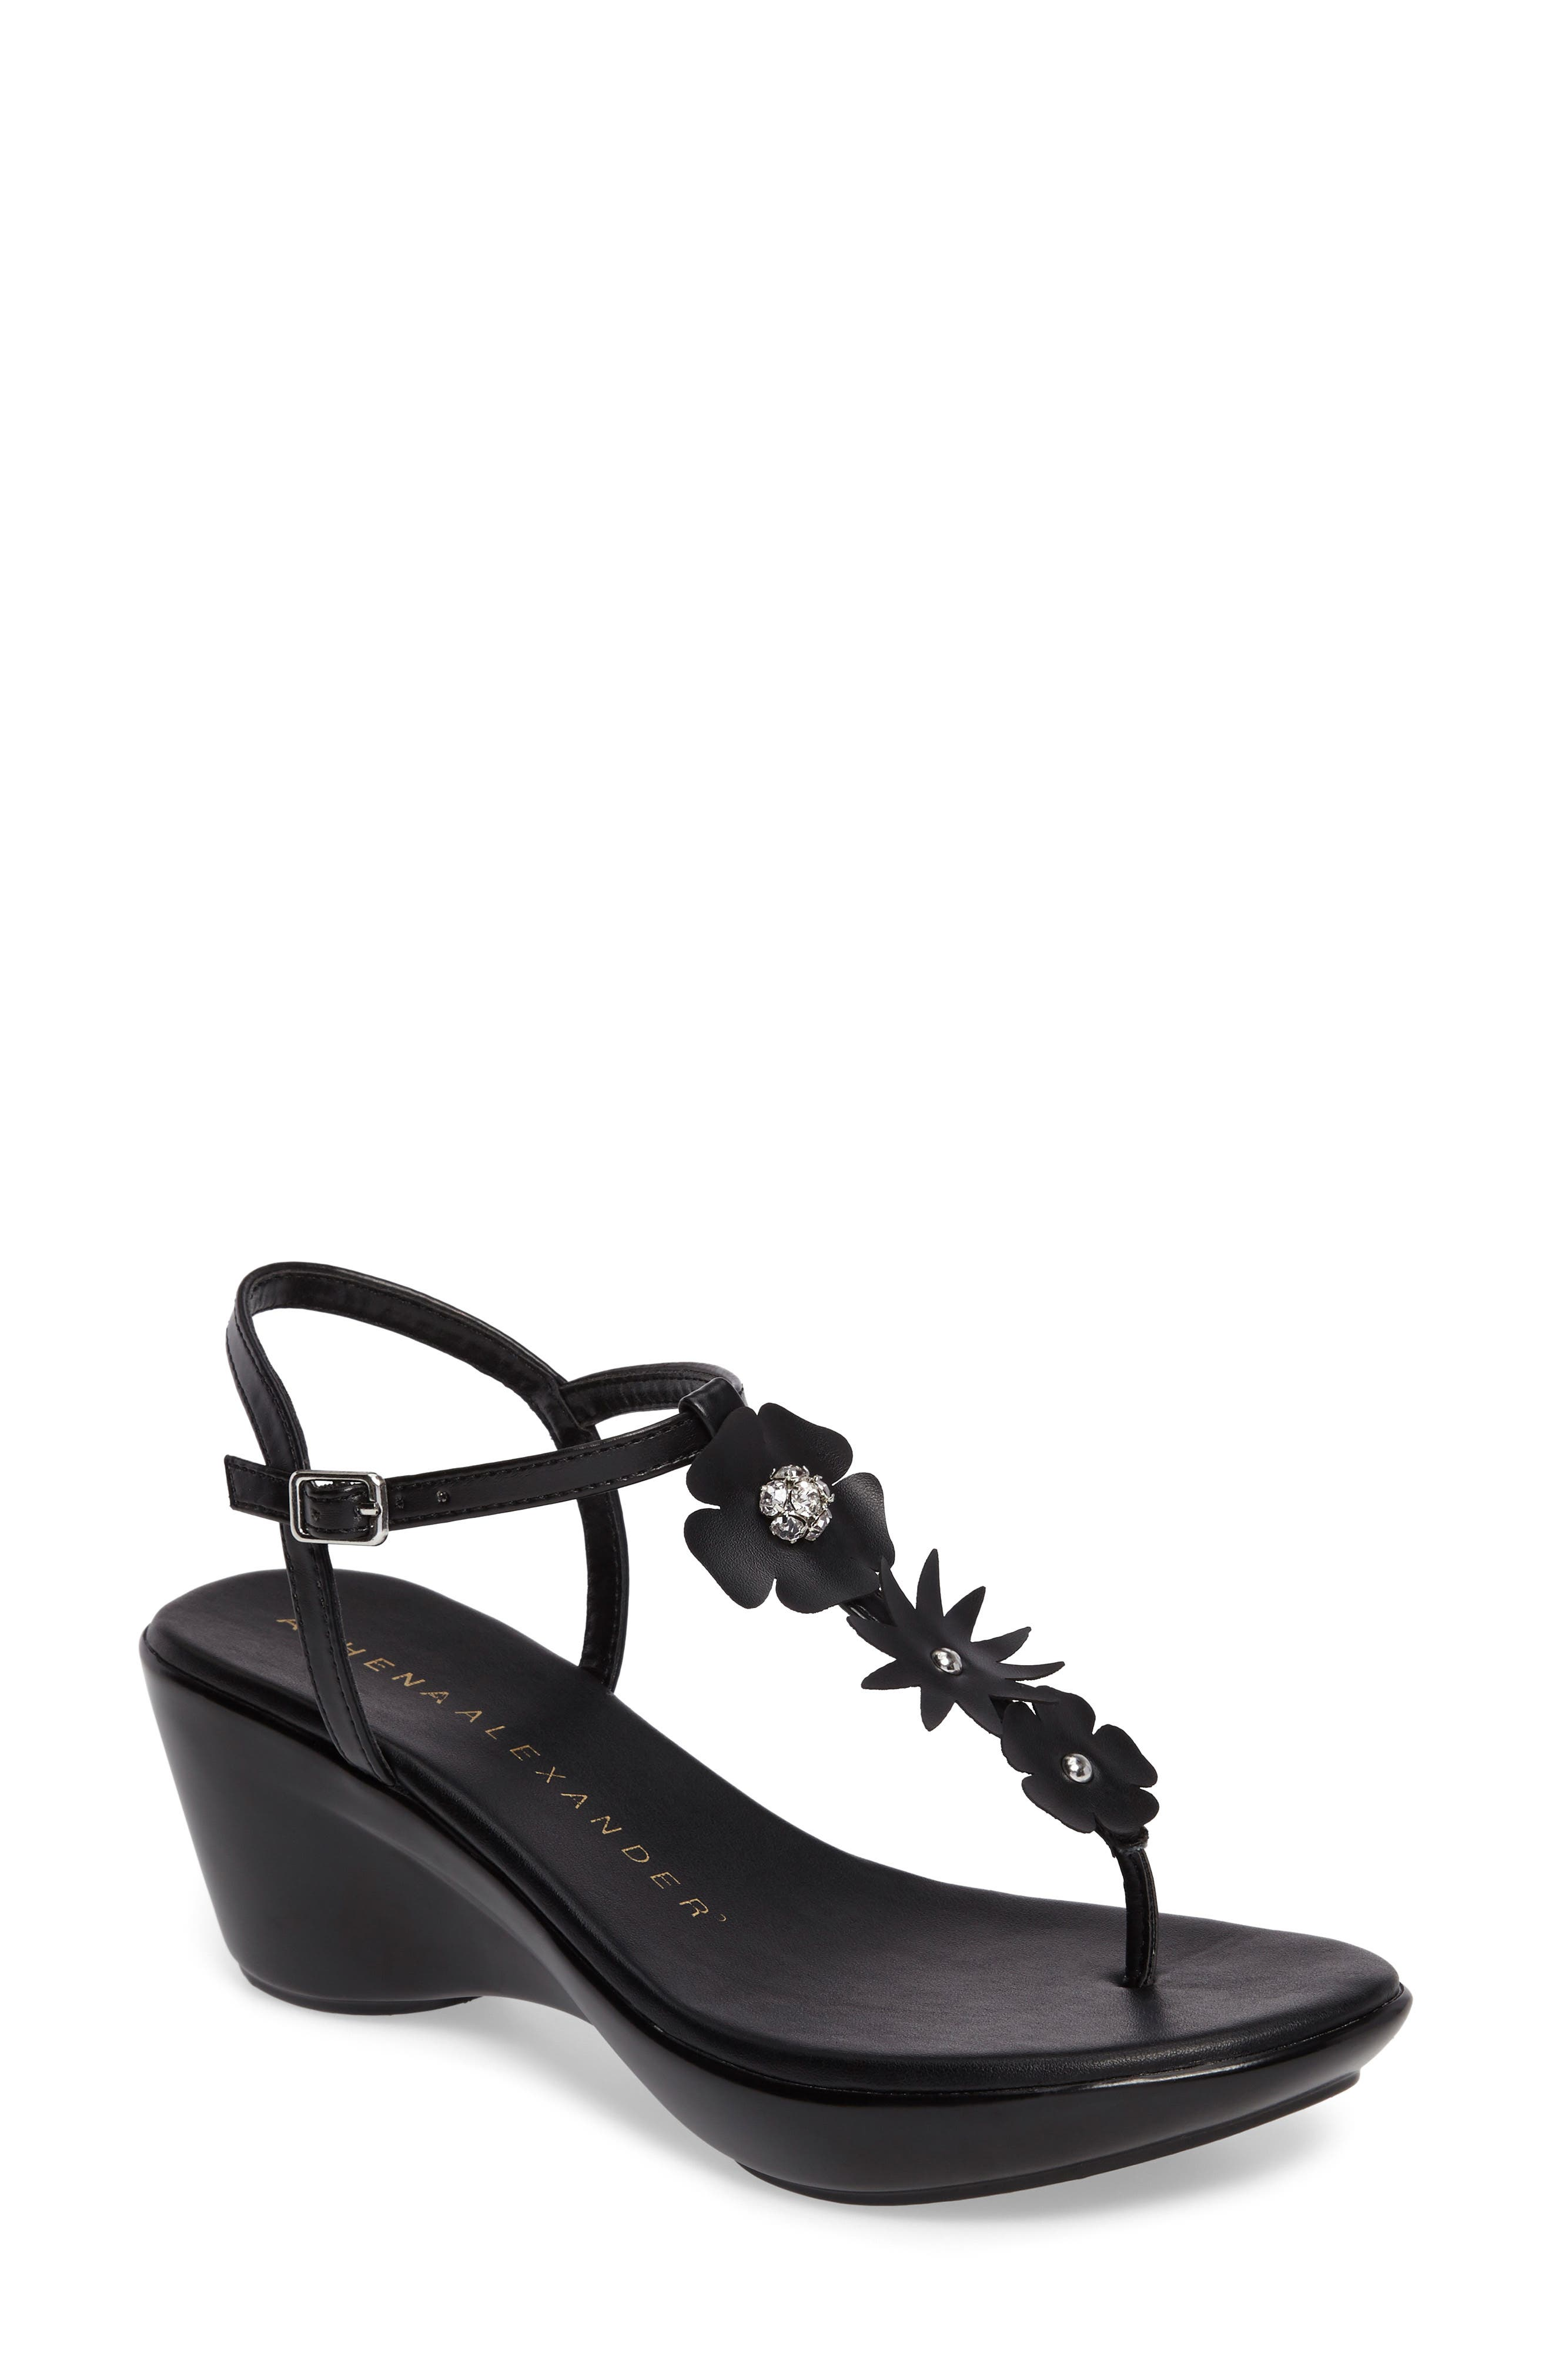 Gianna Embellished T-Strap Wedge,                         Main,                         color, Black Faux Leather